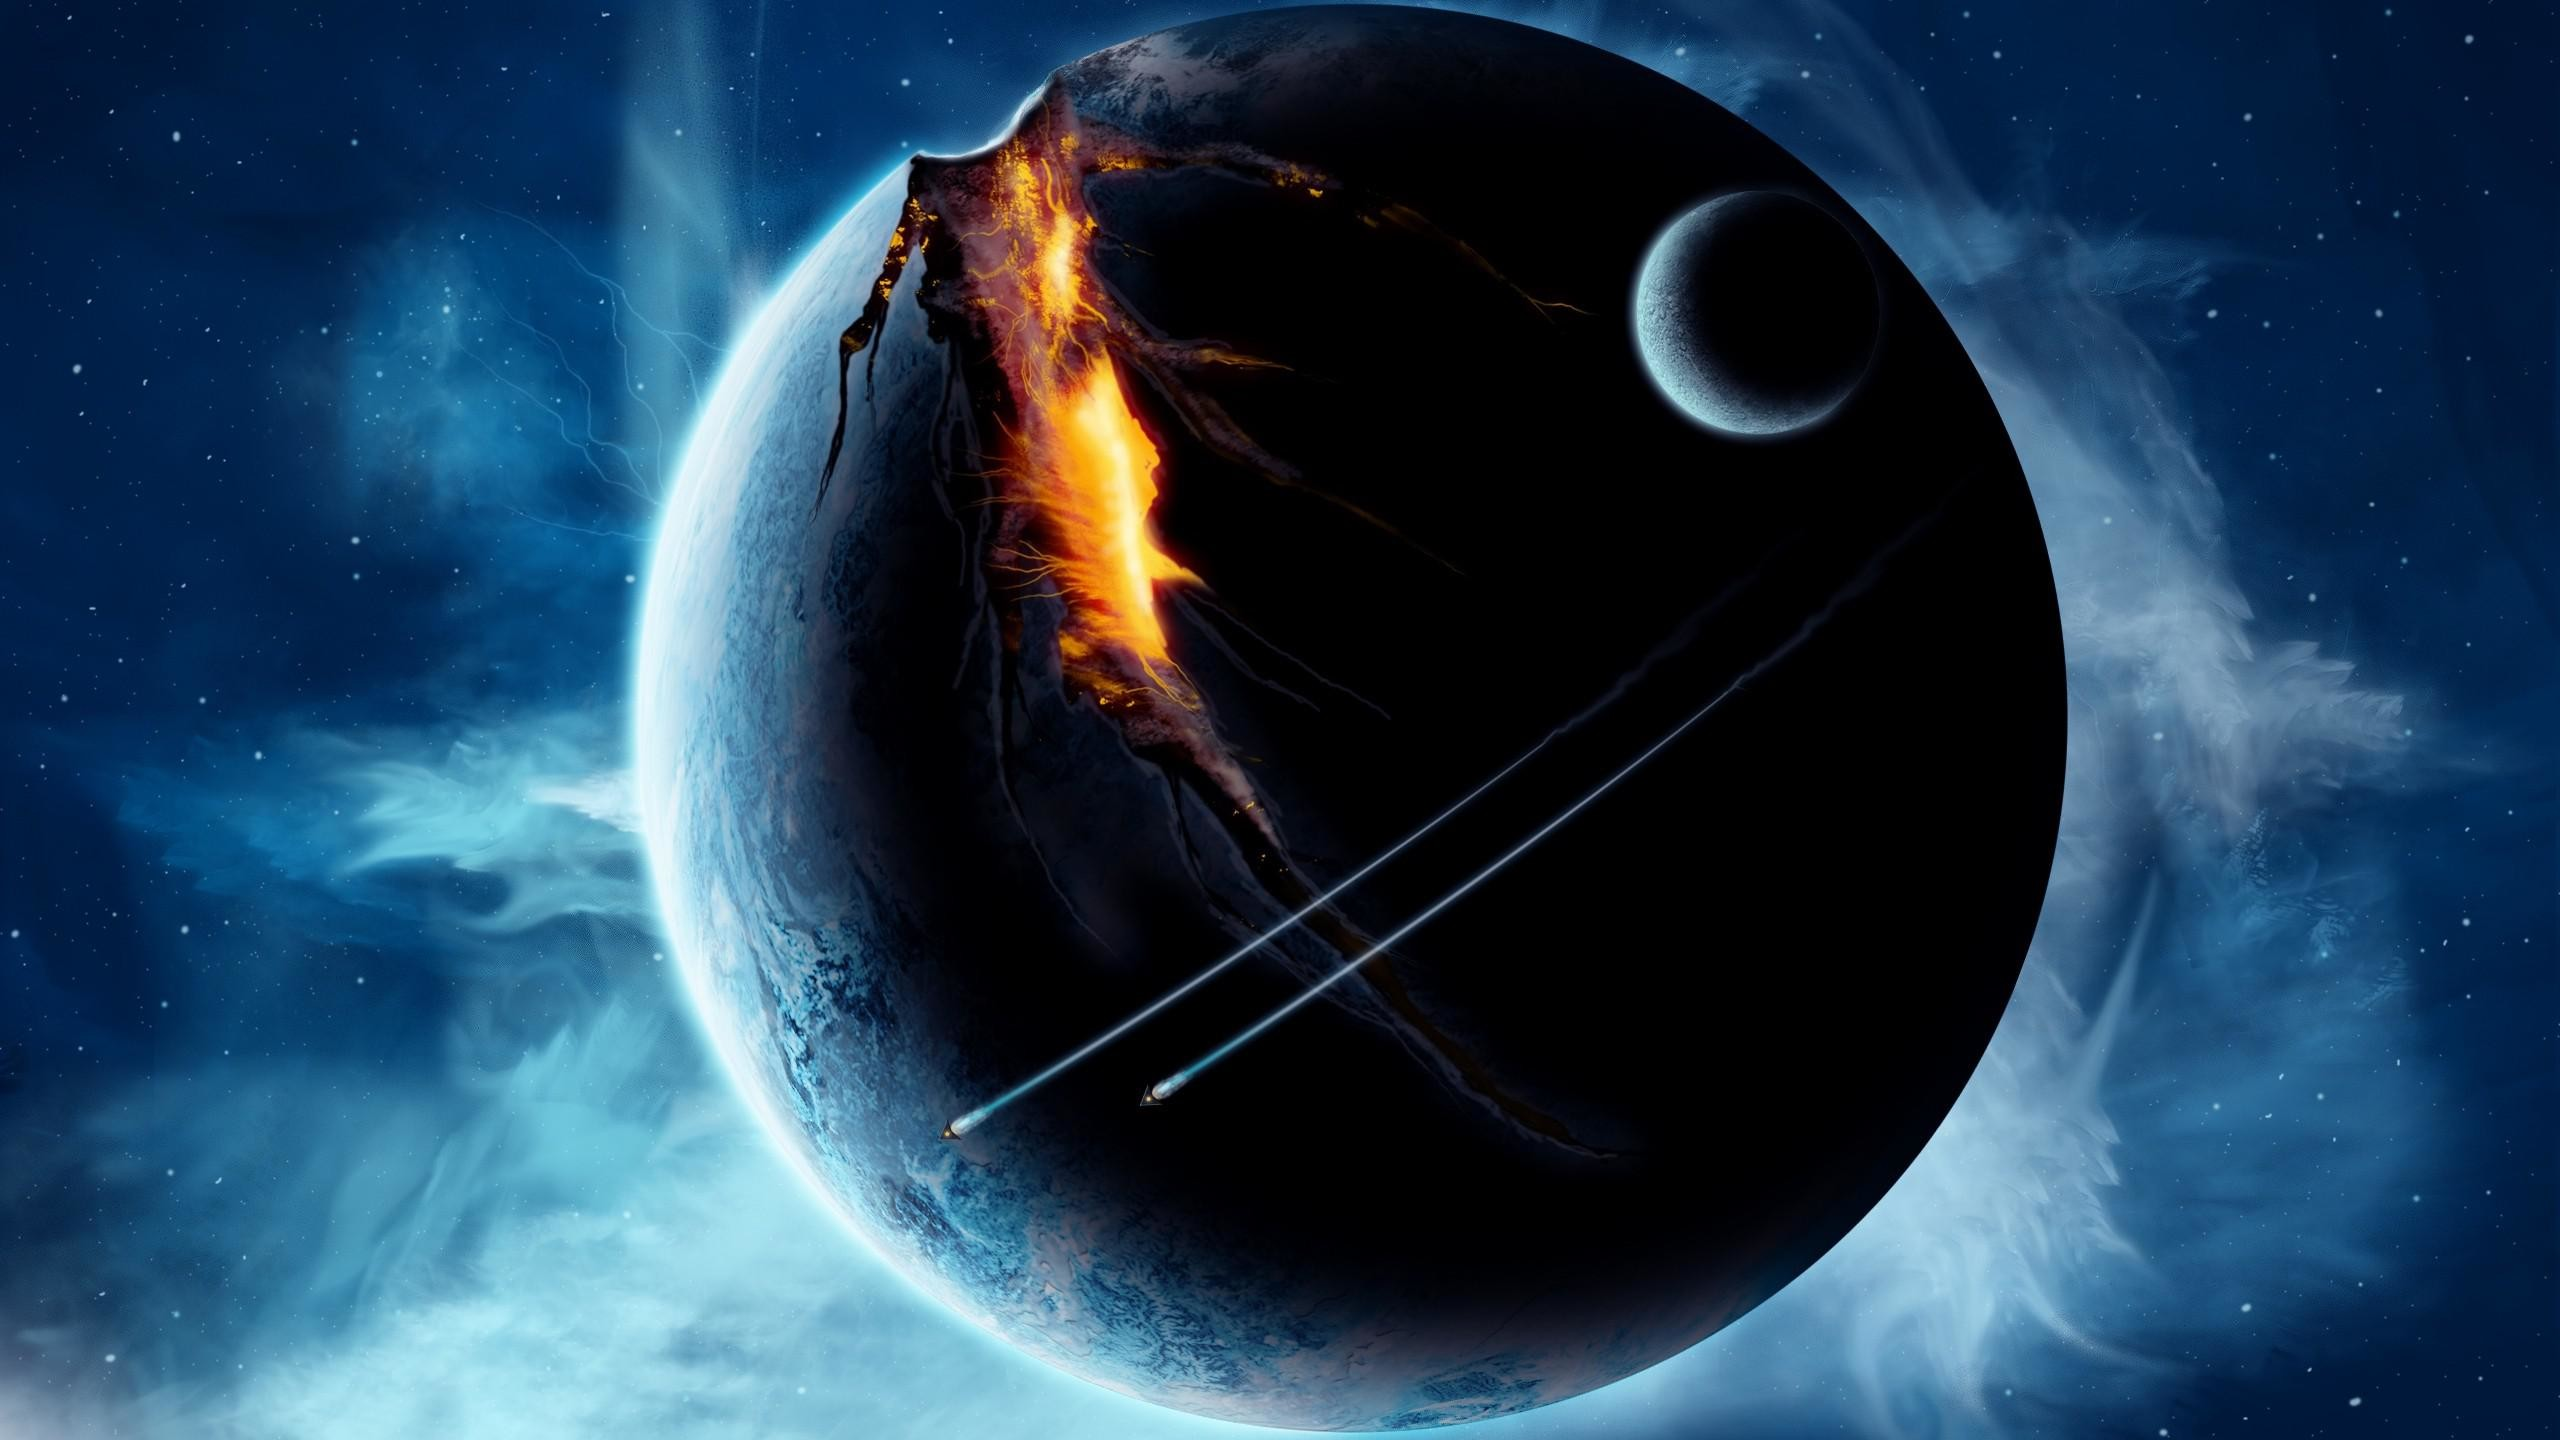 Outer Space Planets Broken Spaceships Free Images